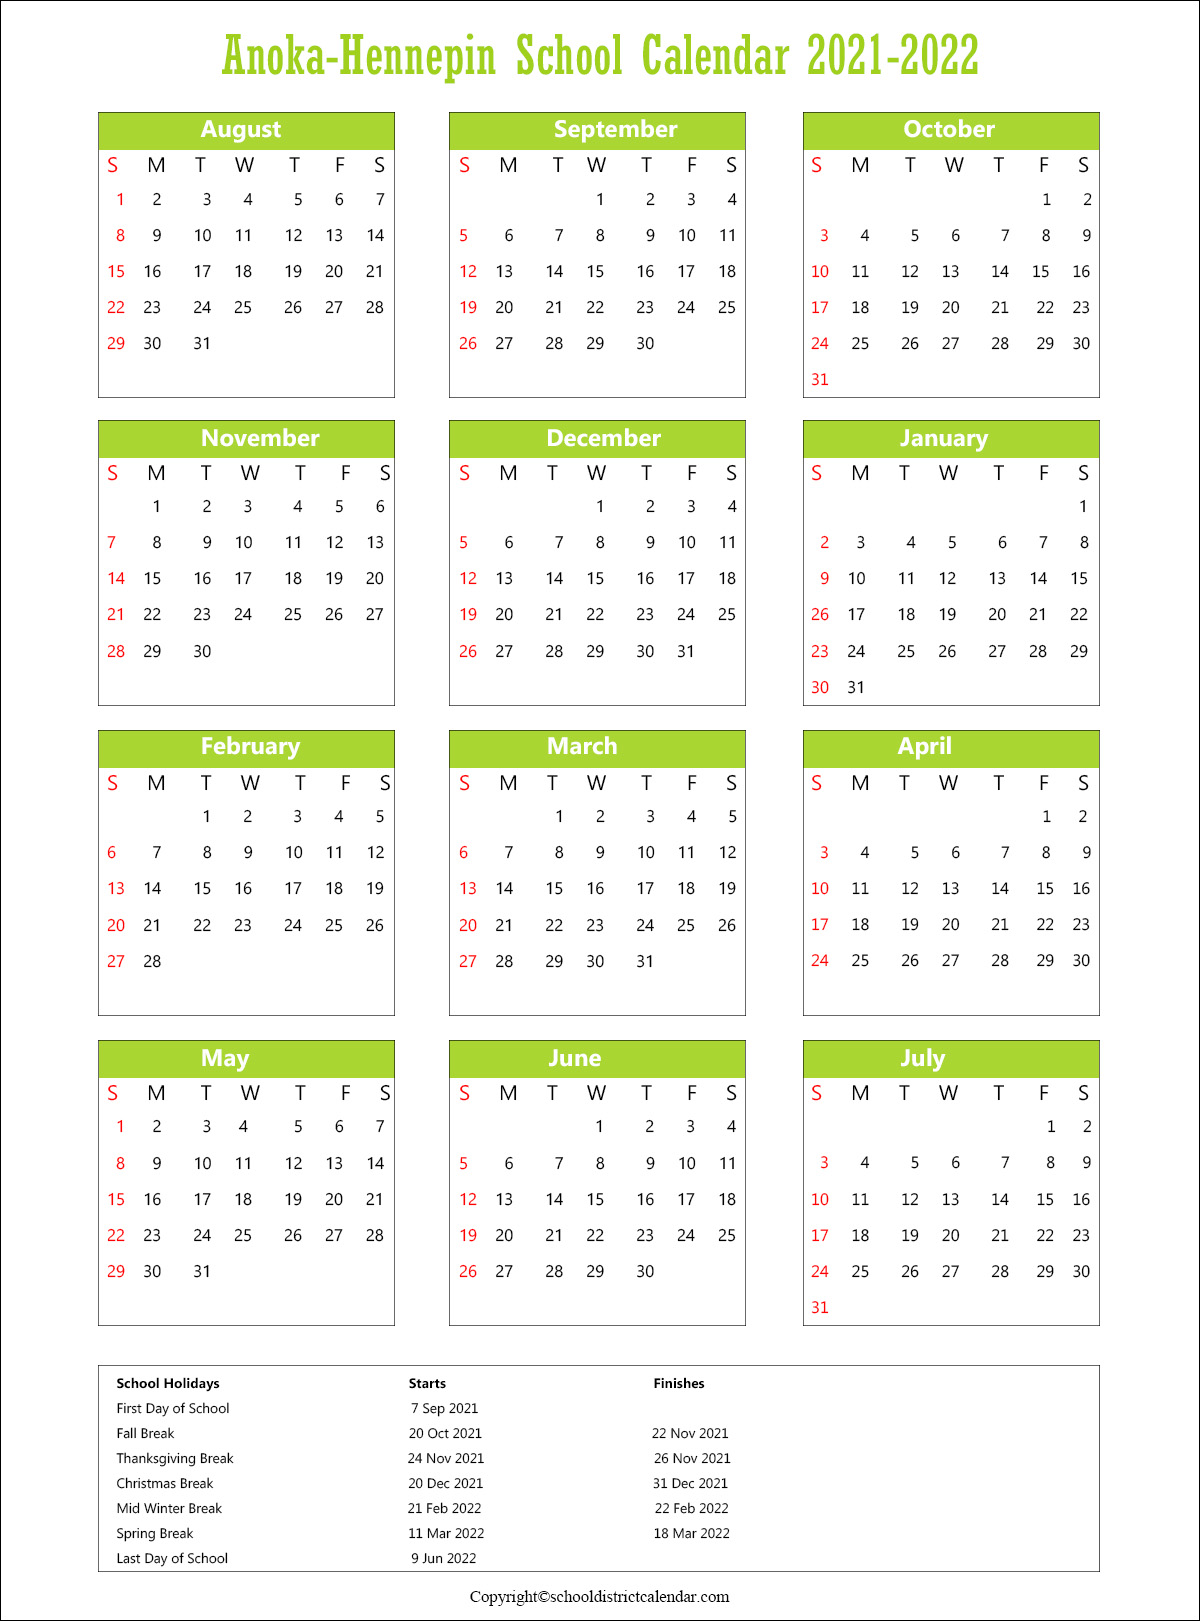 Anoka-Hennepin School District, Minnesota Calendar Holidays 2021